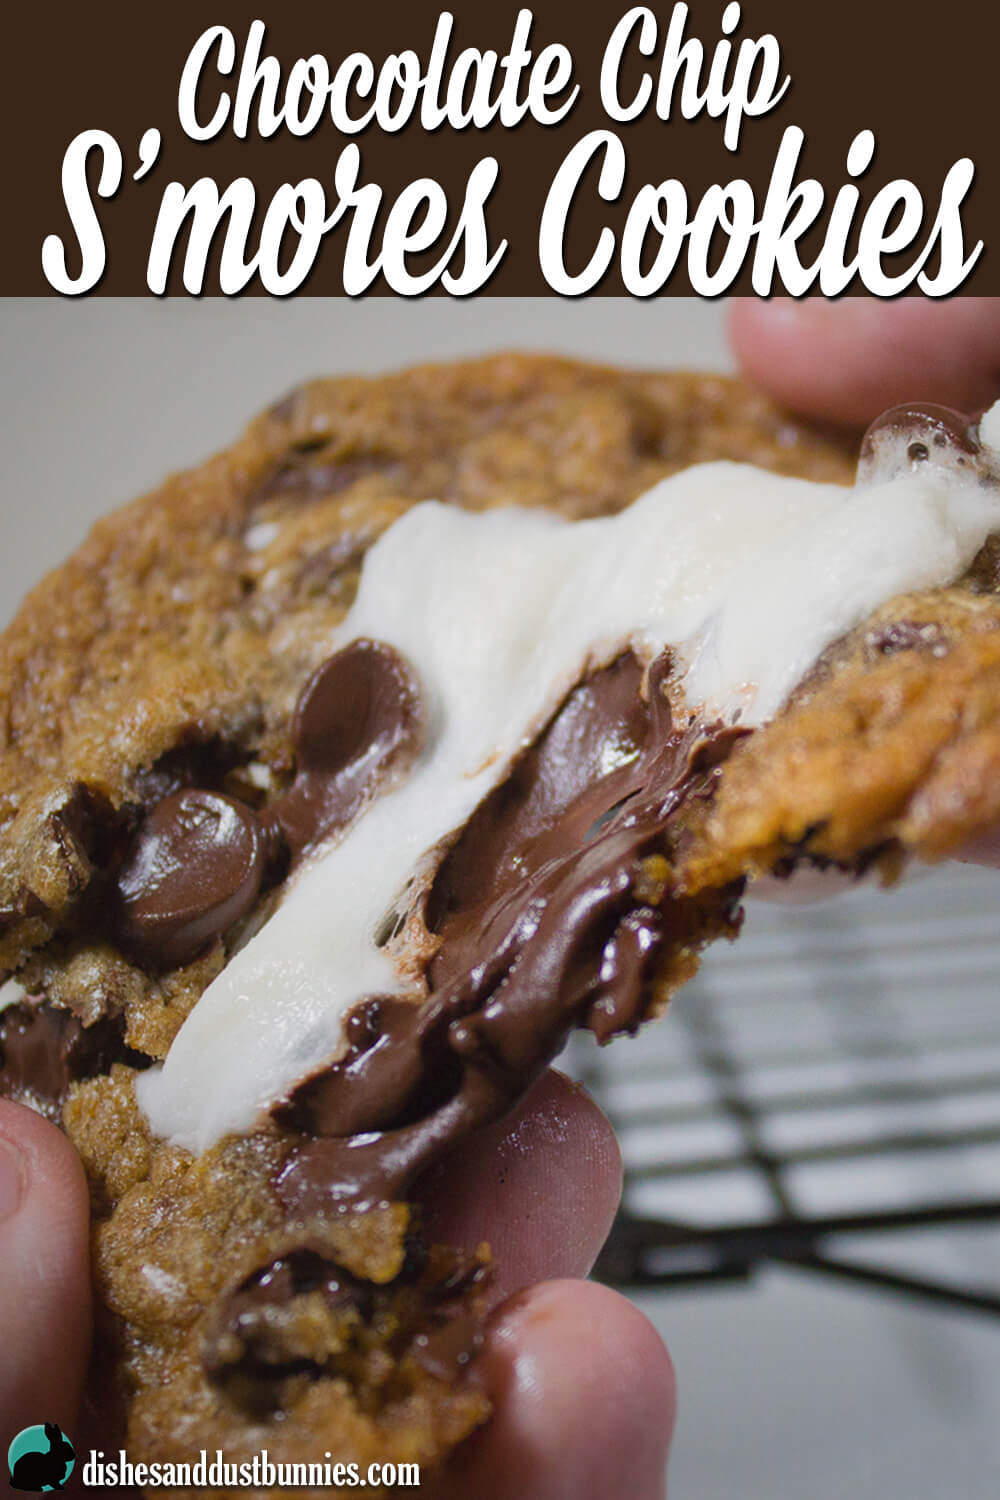 Chocolate Chip S'mores Cookies from dishesanddustbunnies.com